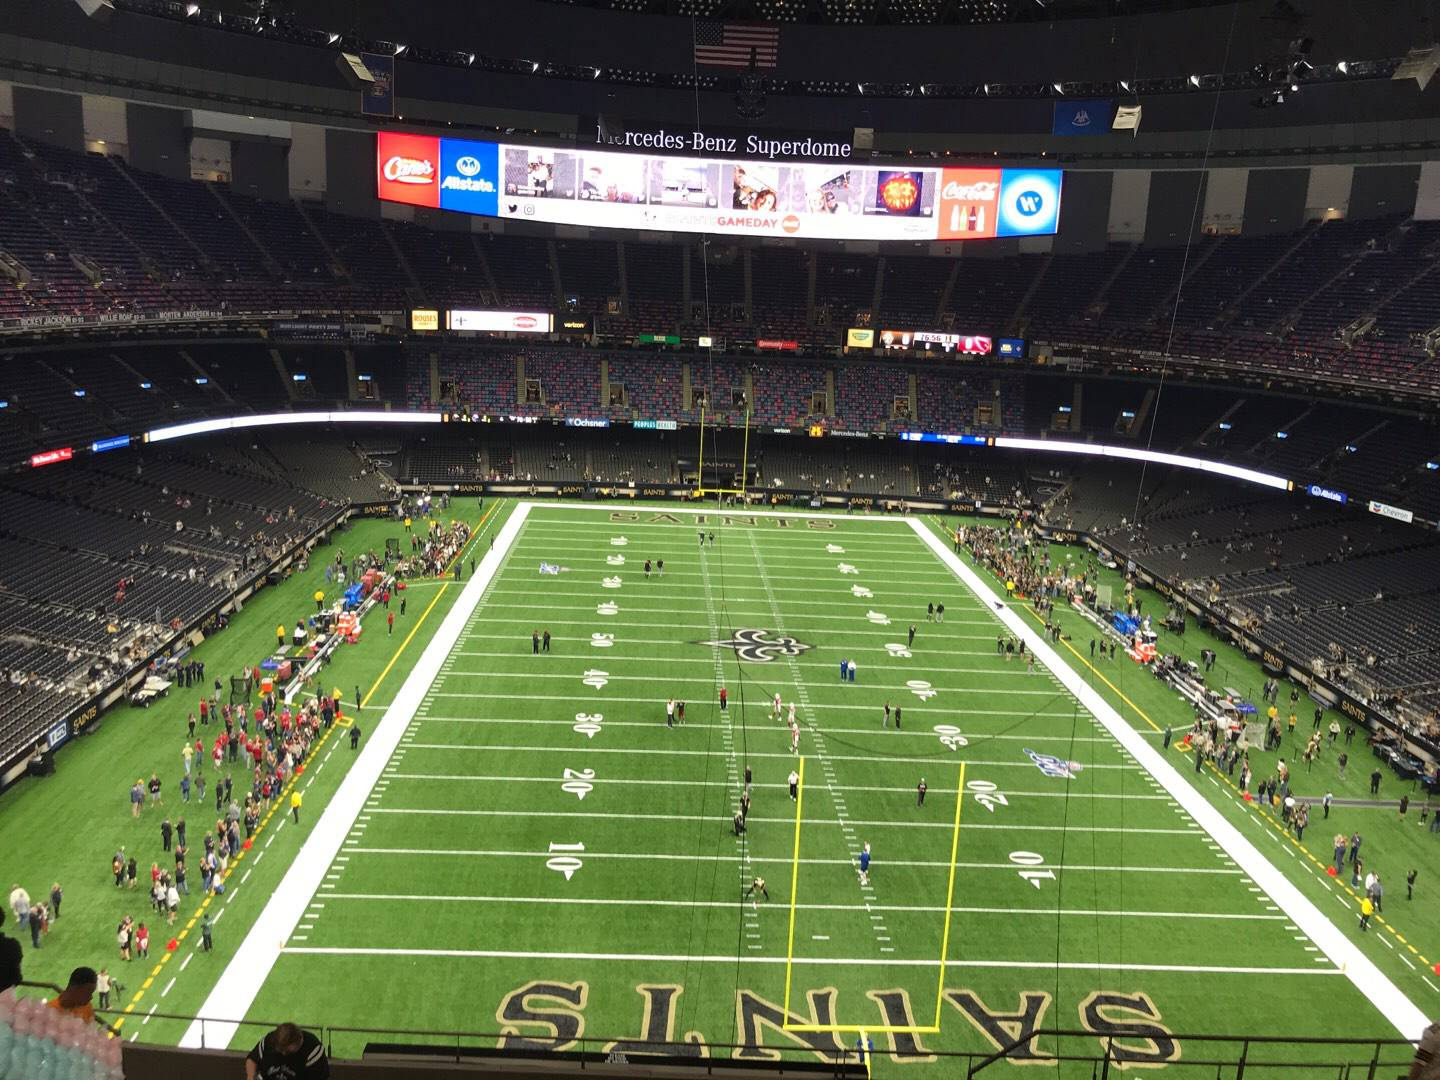 Mercedes-Benz Superdome Section 602 Row 12 Seat 7